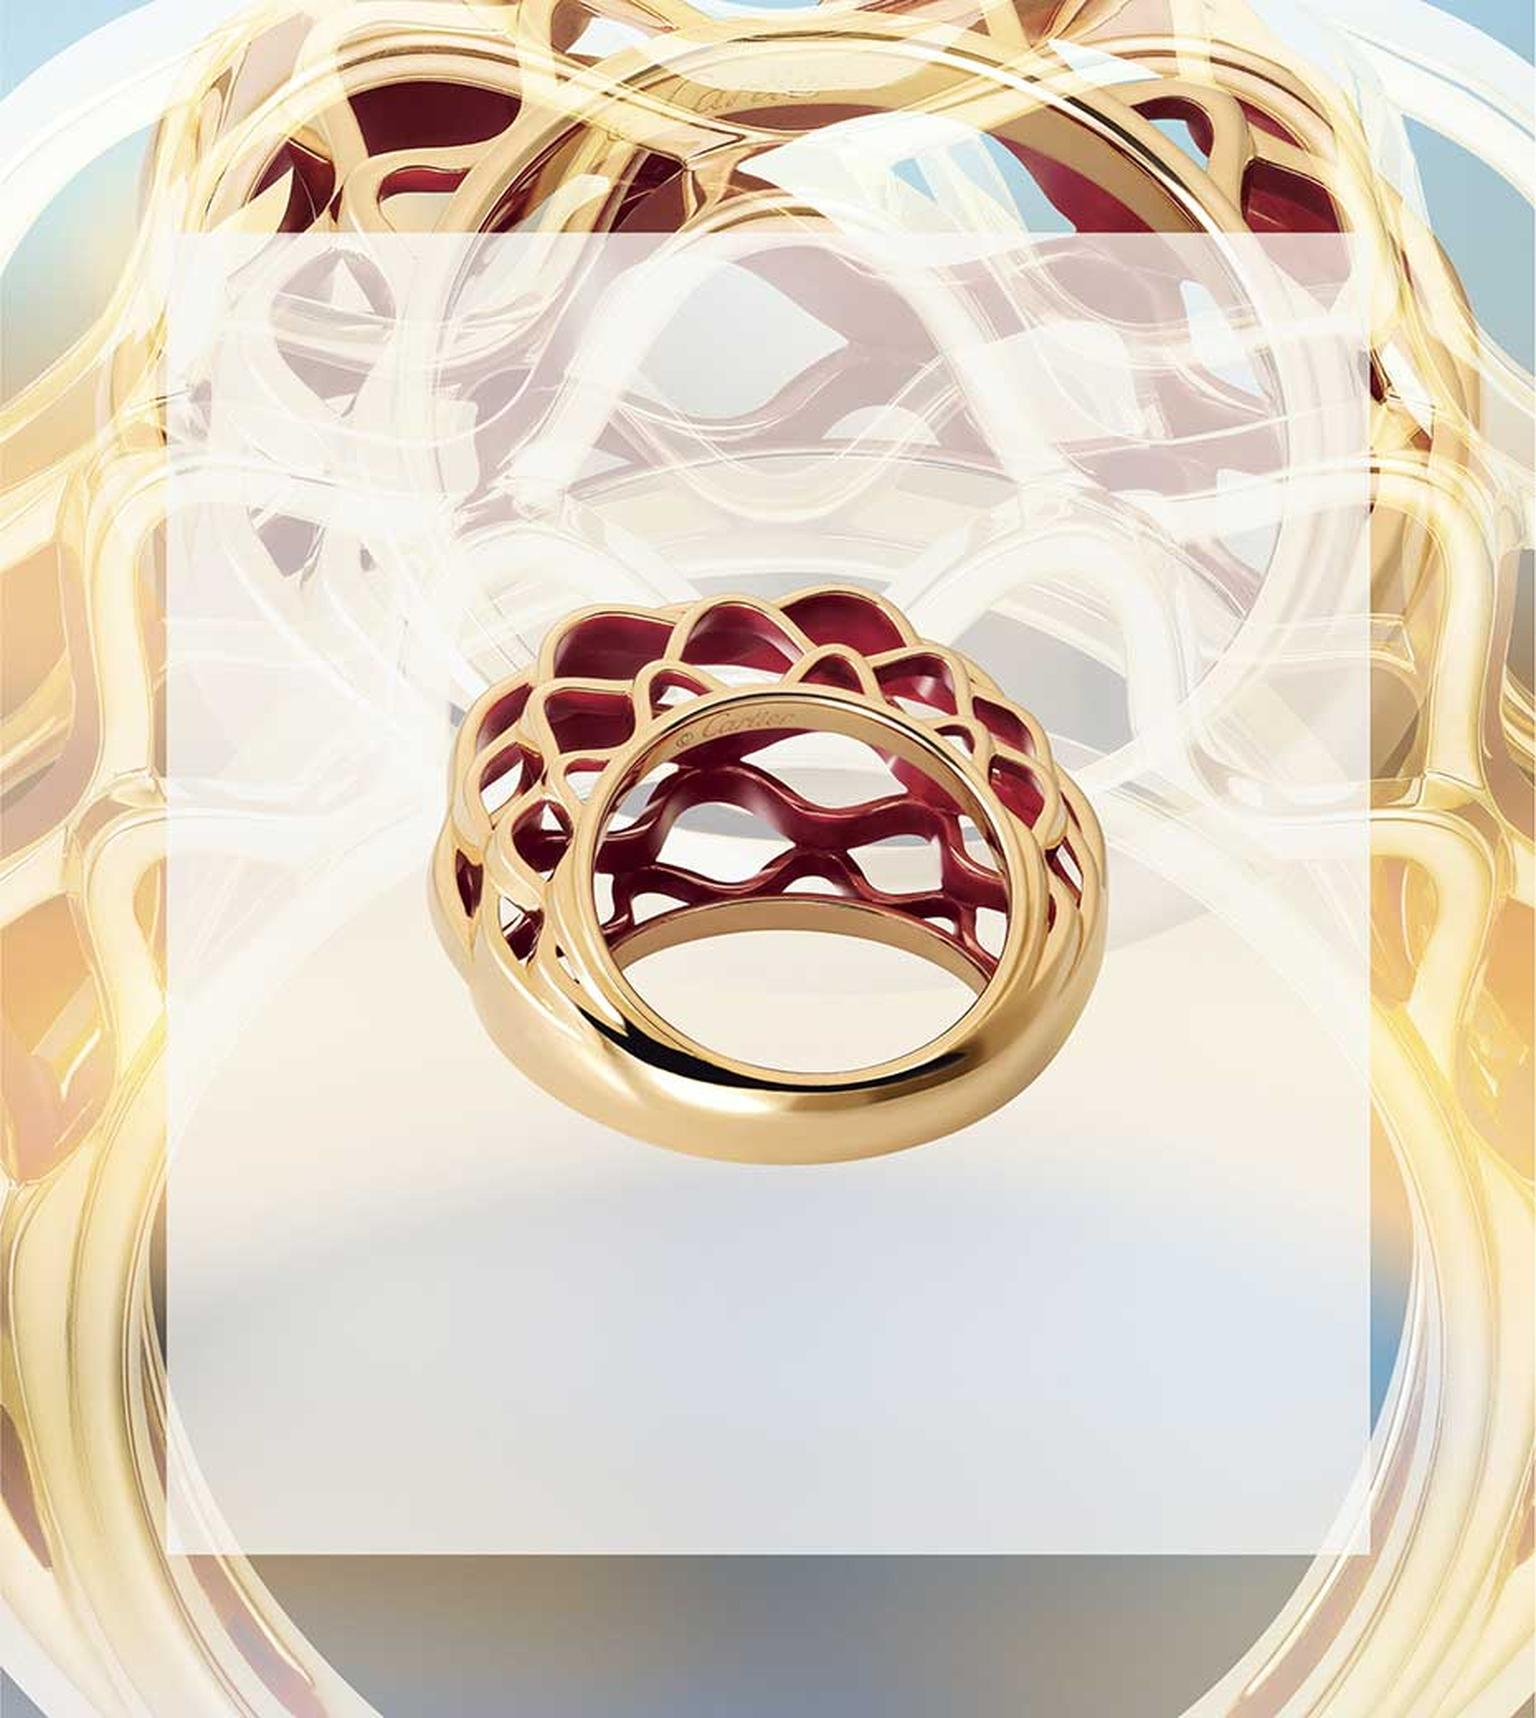 The metalwork of the glass dome of the Grand Palais is interpreted by Cartier in this dramatic new Paris Nouvelle Vague ring, which resembles golden basketwork.